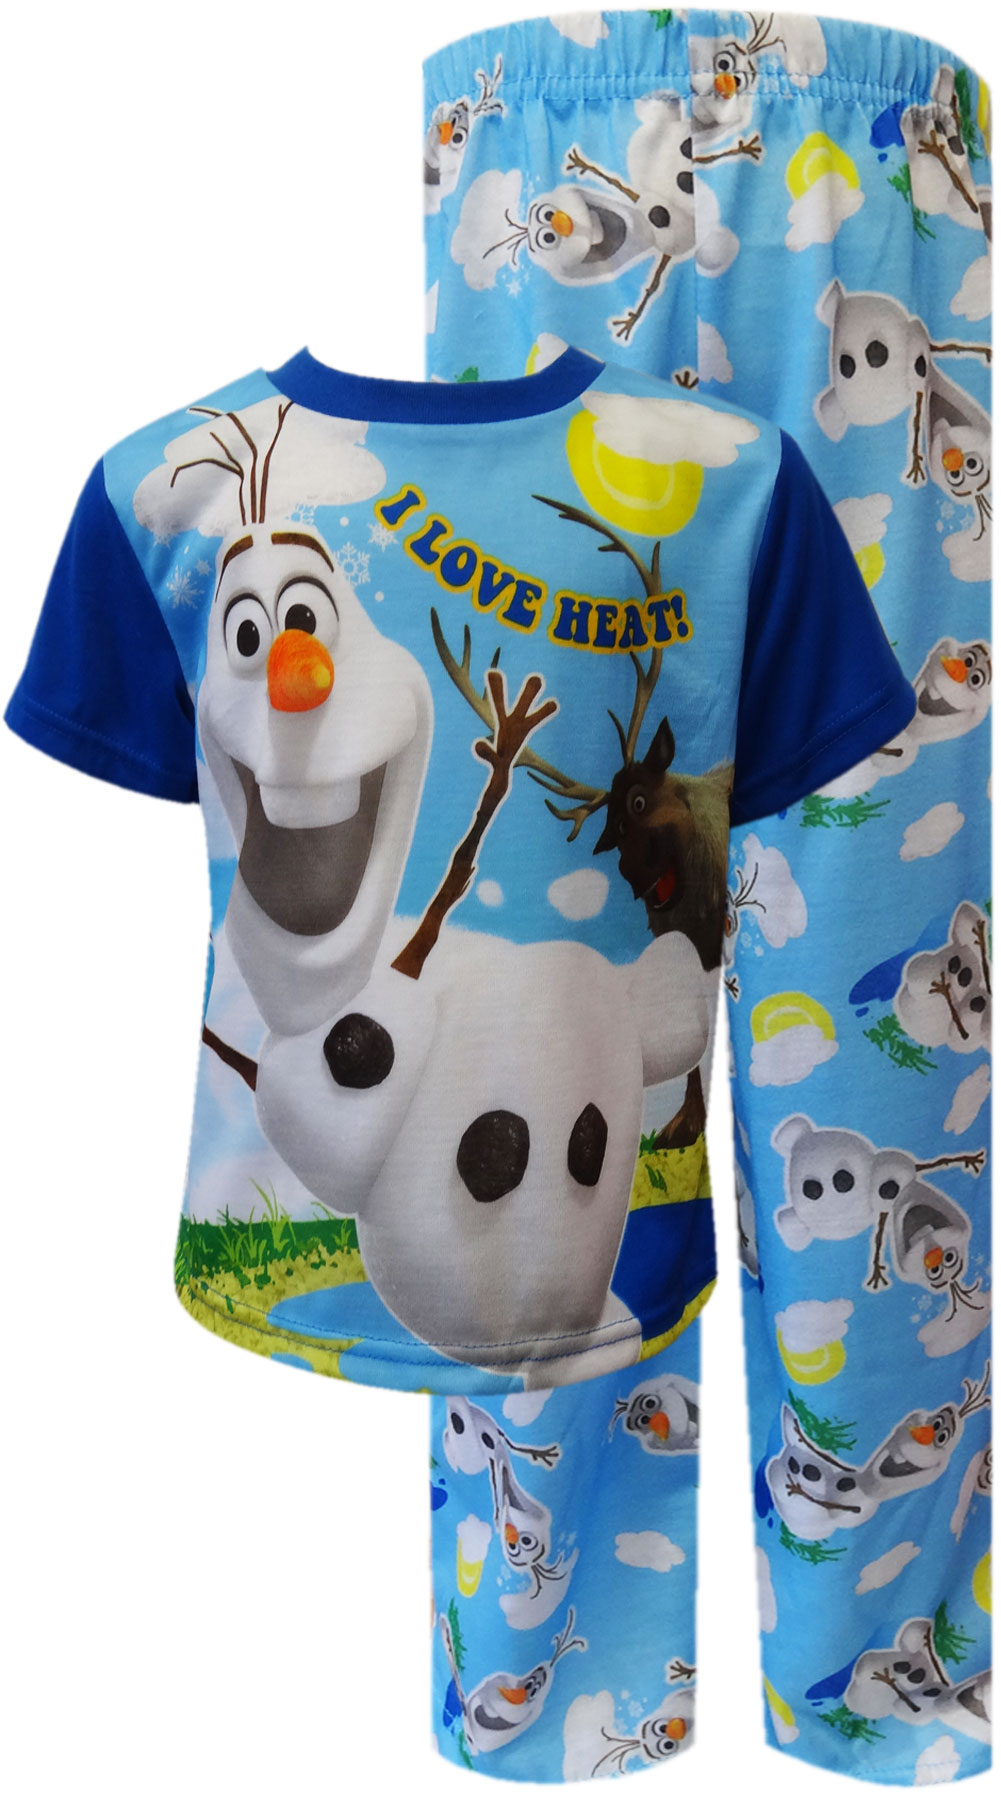 Image of Disney Frozen Olaf I Love The Heat Toddler Pajama for boys